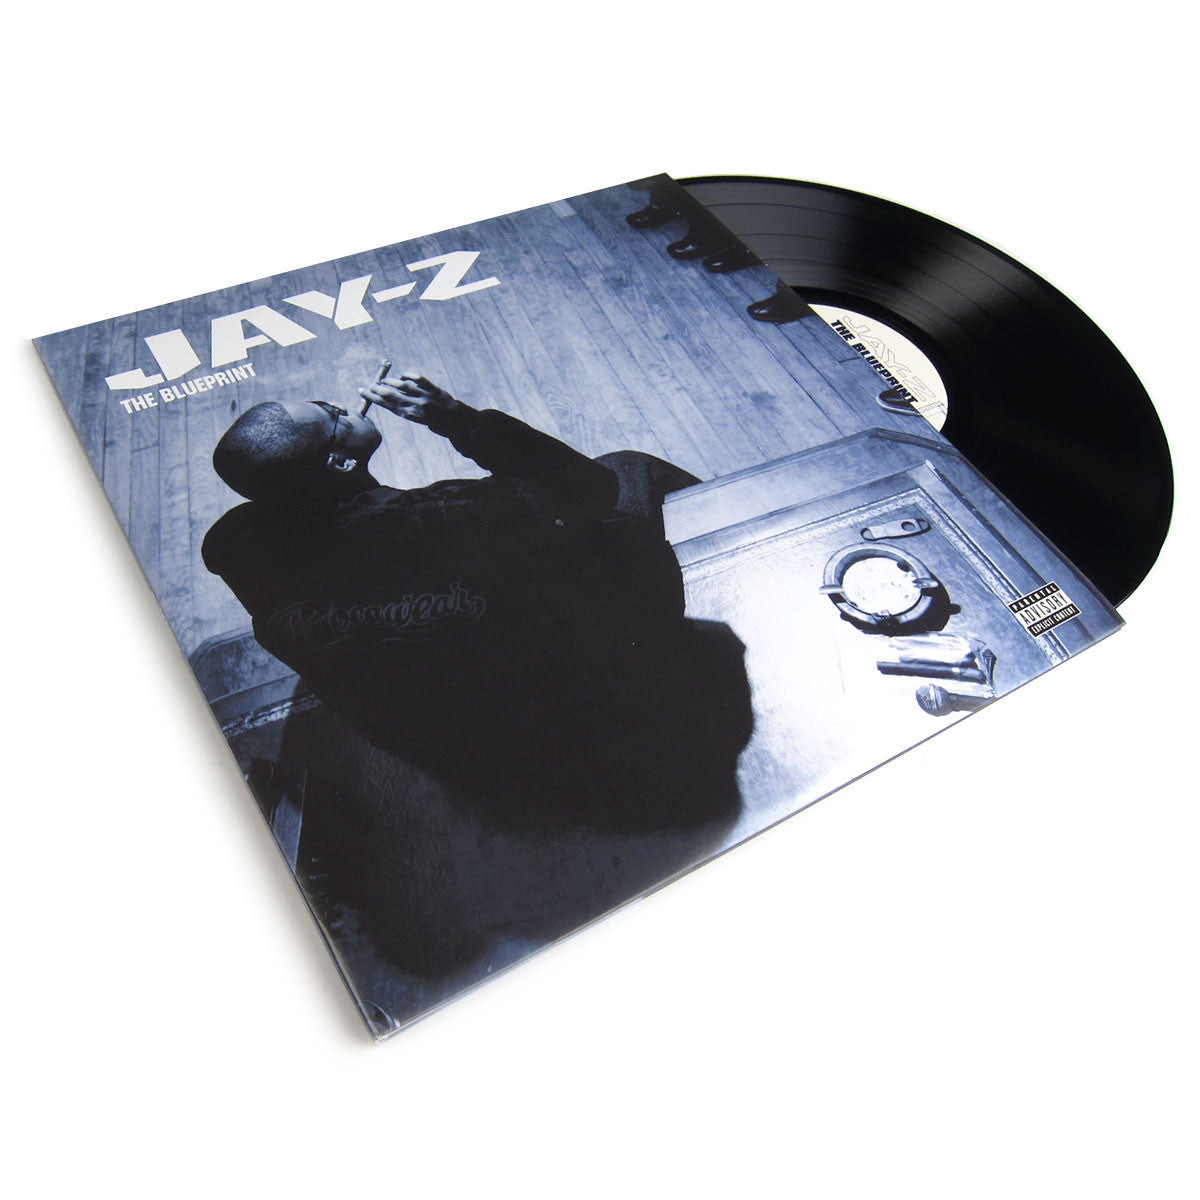 Jay z the blueprint vinyl 2lp turntablelab jay z the blueprint vinyl 2lp malvernweather Images